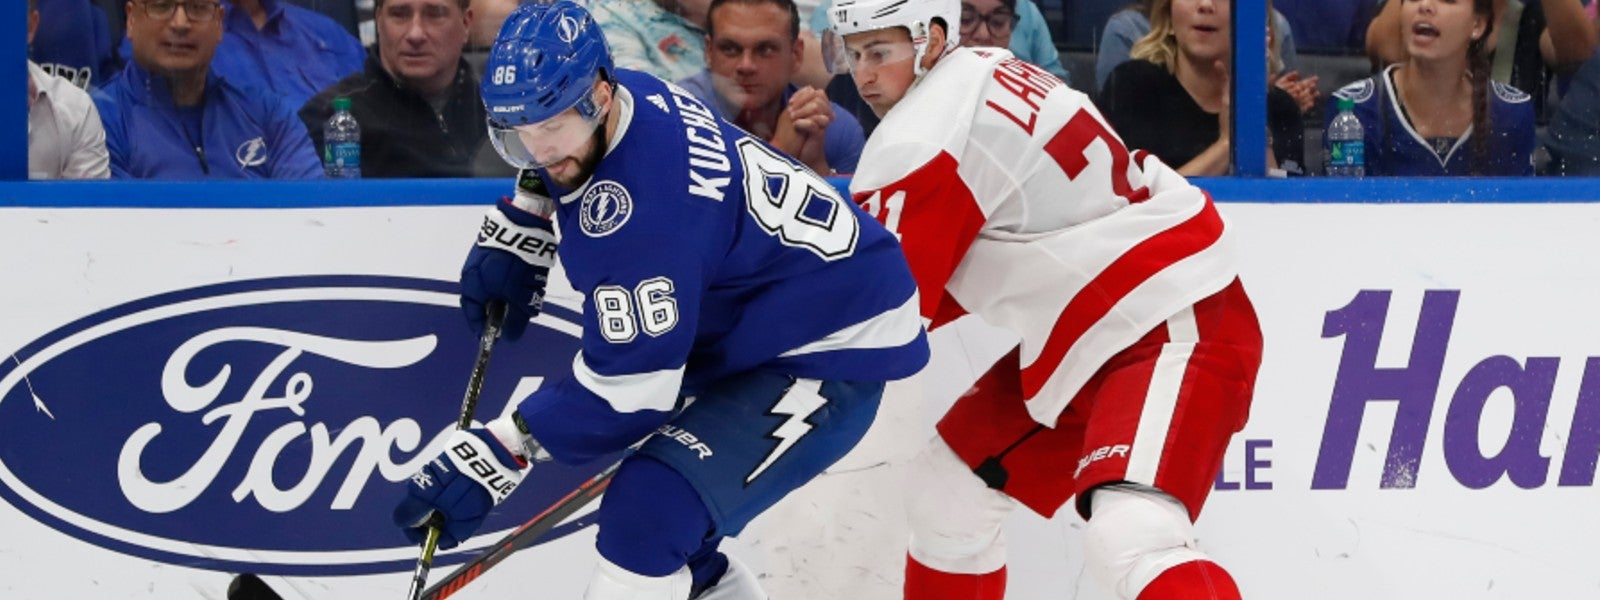 Tampa Bay Lightning vs. Detroit Red Wings